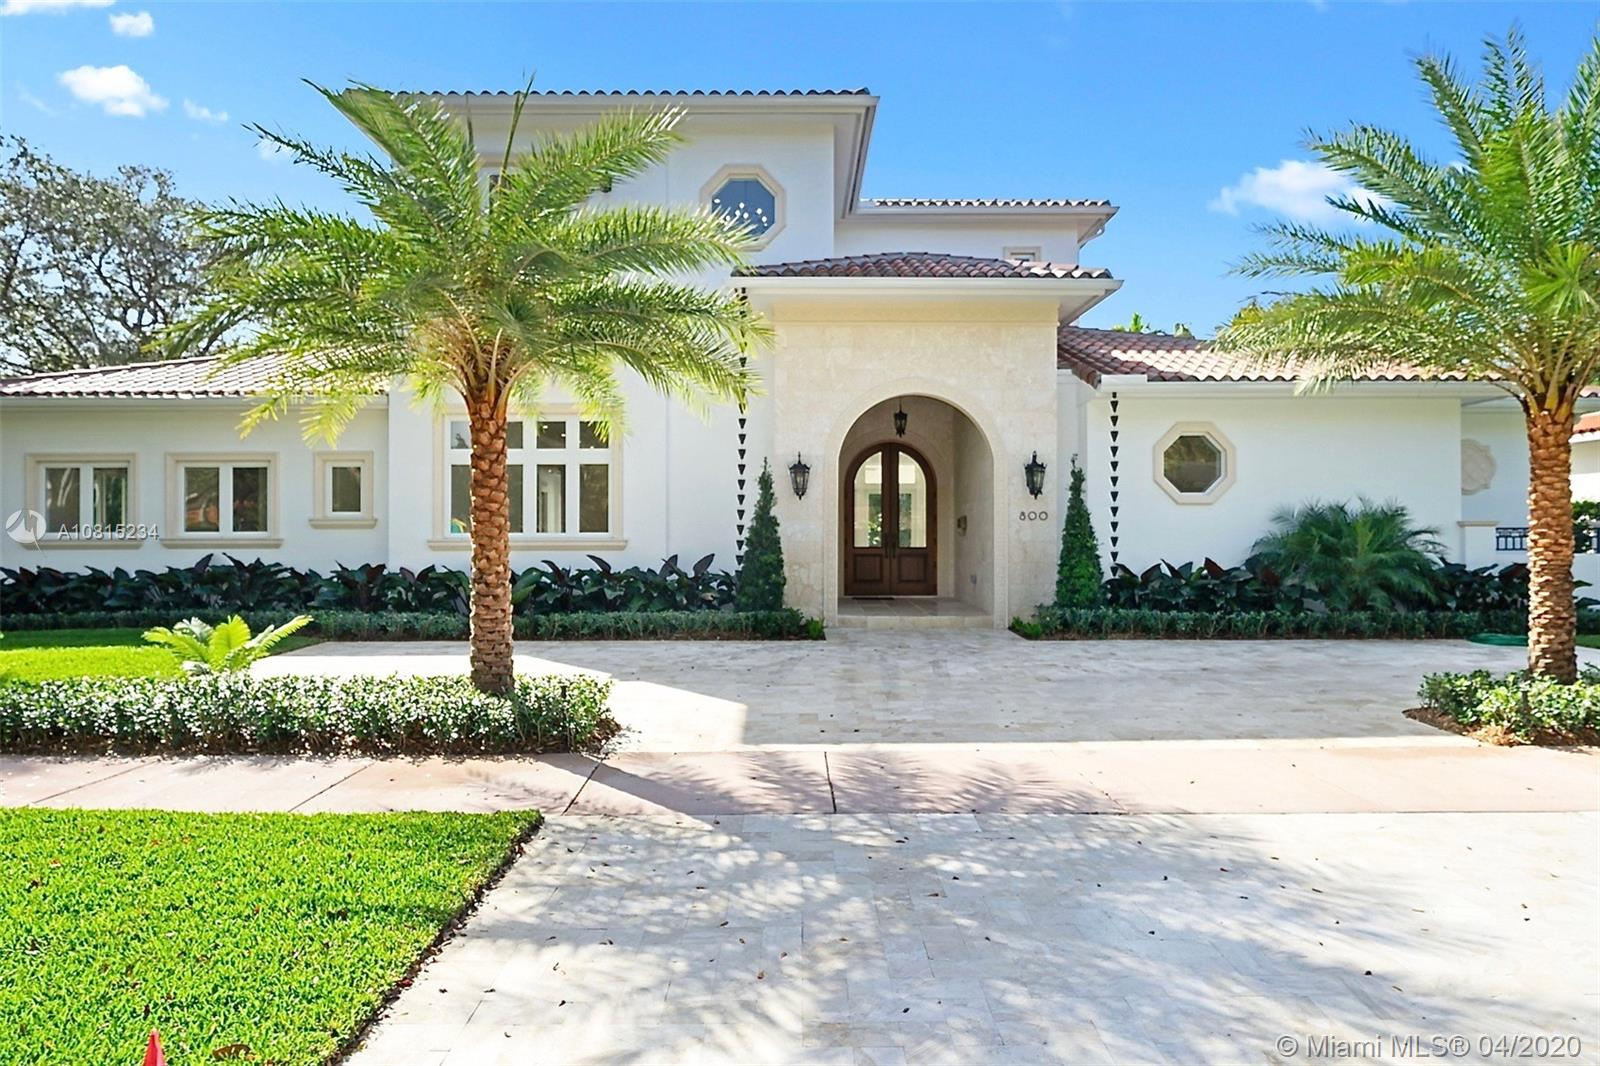 800 Catalonia Ave, Coral Gables, FL 33134